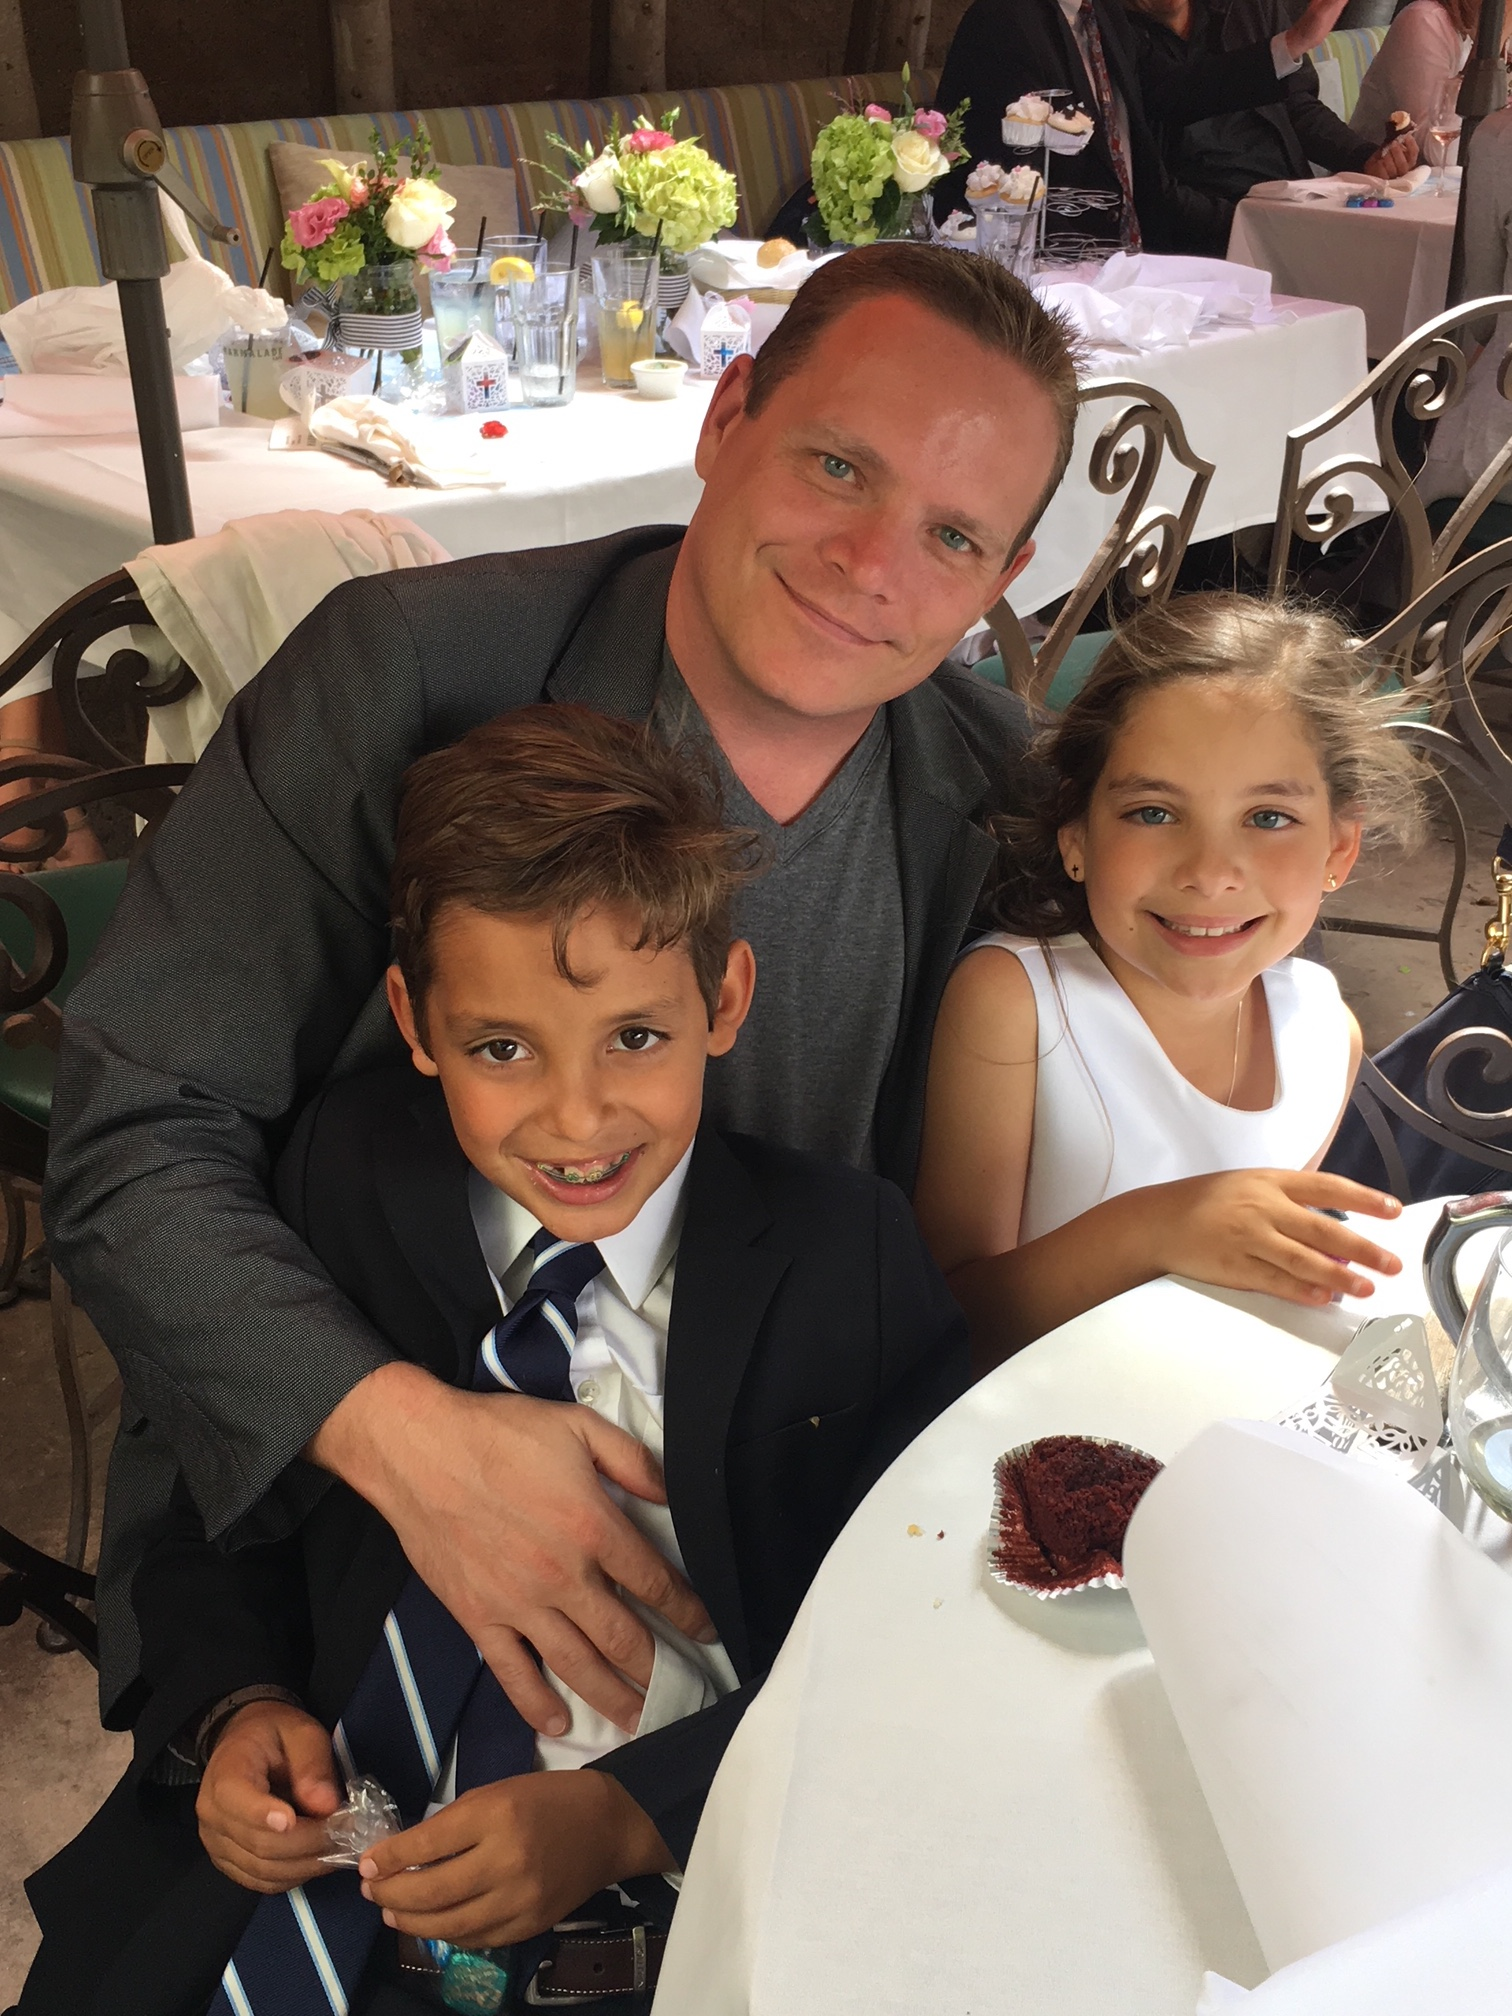 Mike with his niece and nephew